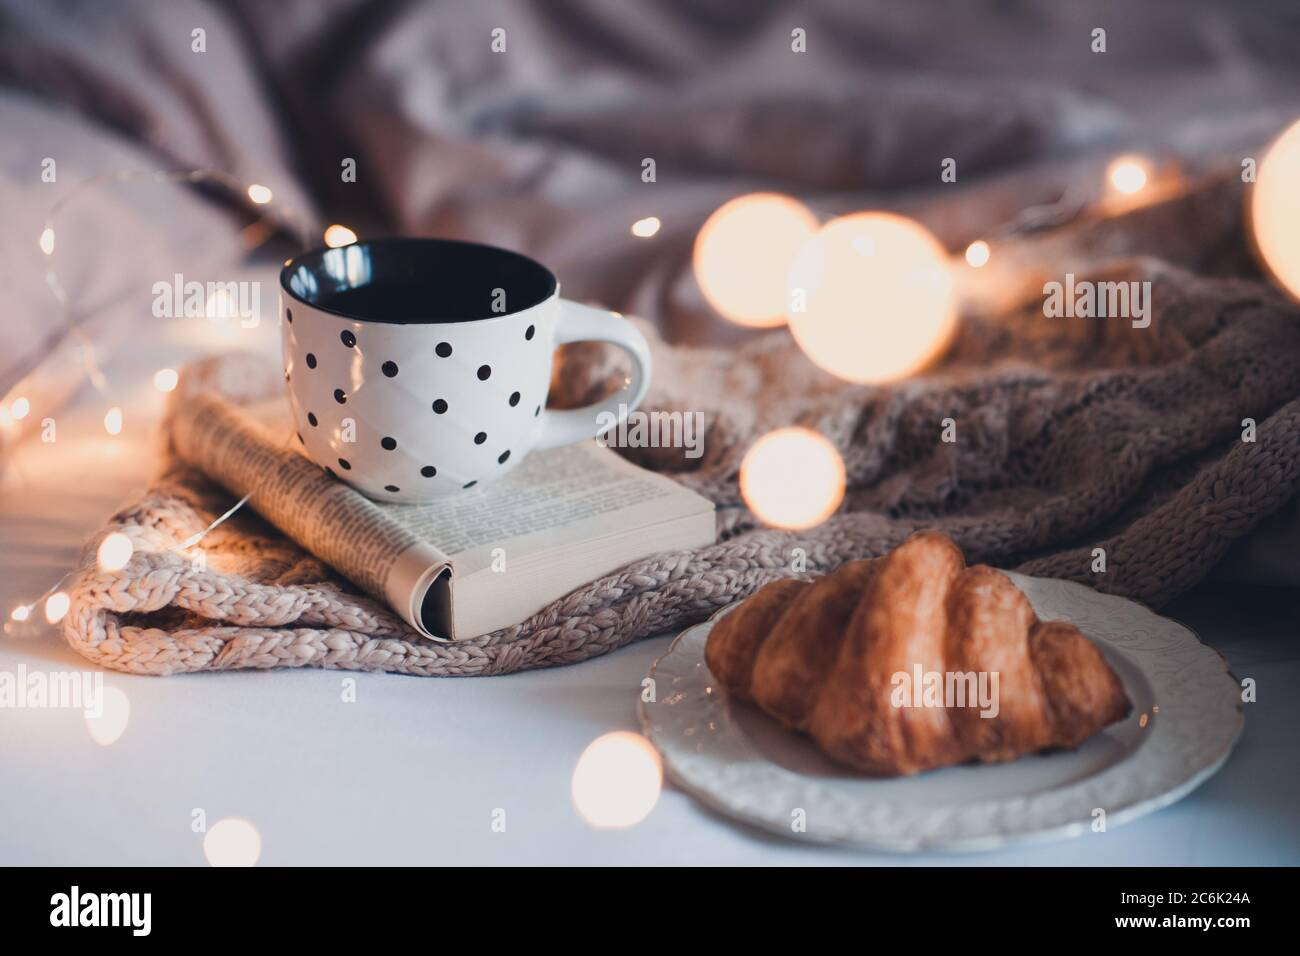 Mug Of Fresh Black Tea With Tasty Croissant And Knitted Textile In Bed Over Glowing Lights Winter Holiday Season Stock Photo Alamy